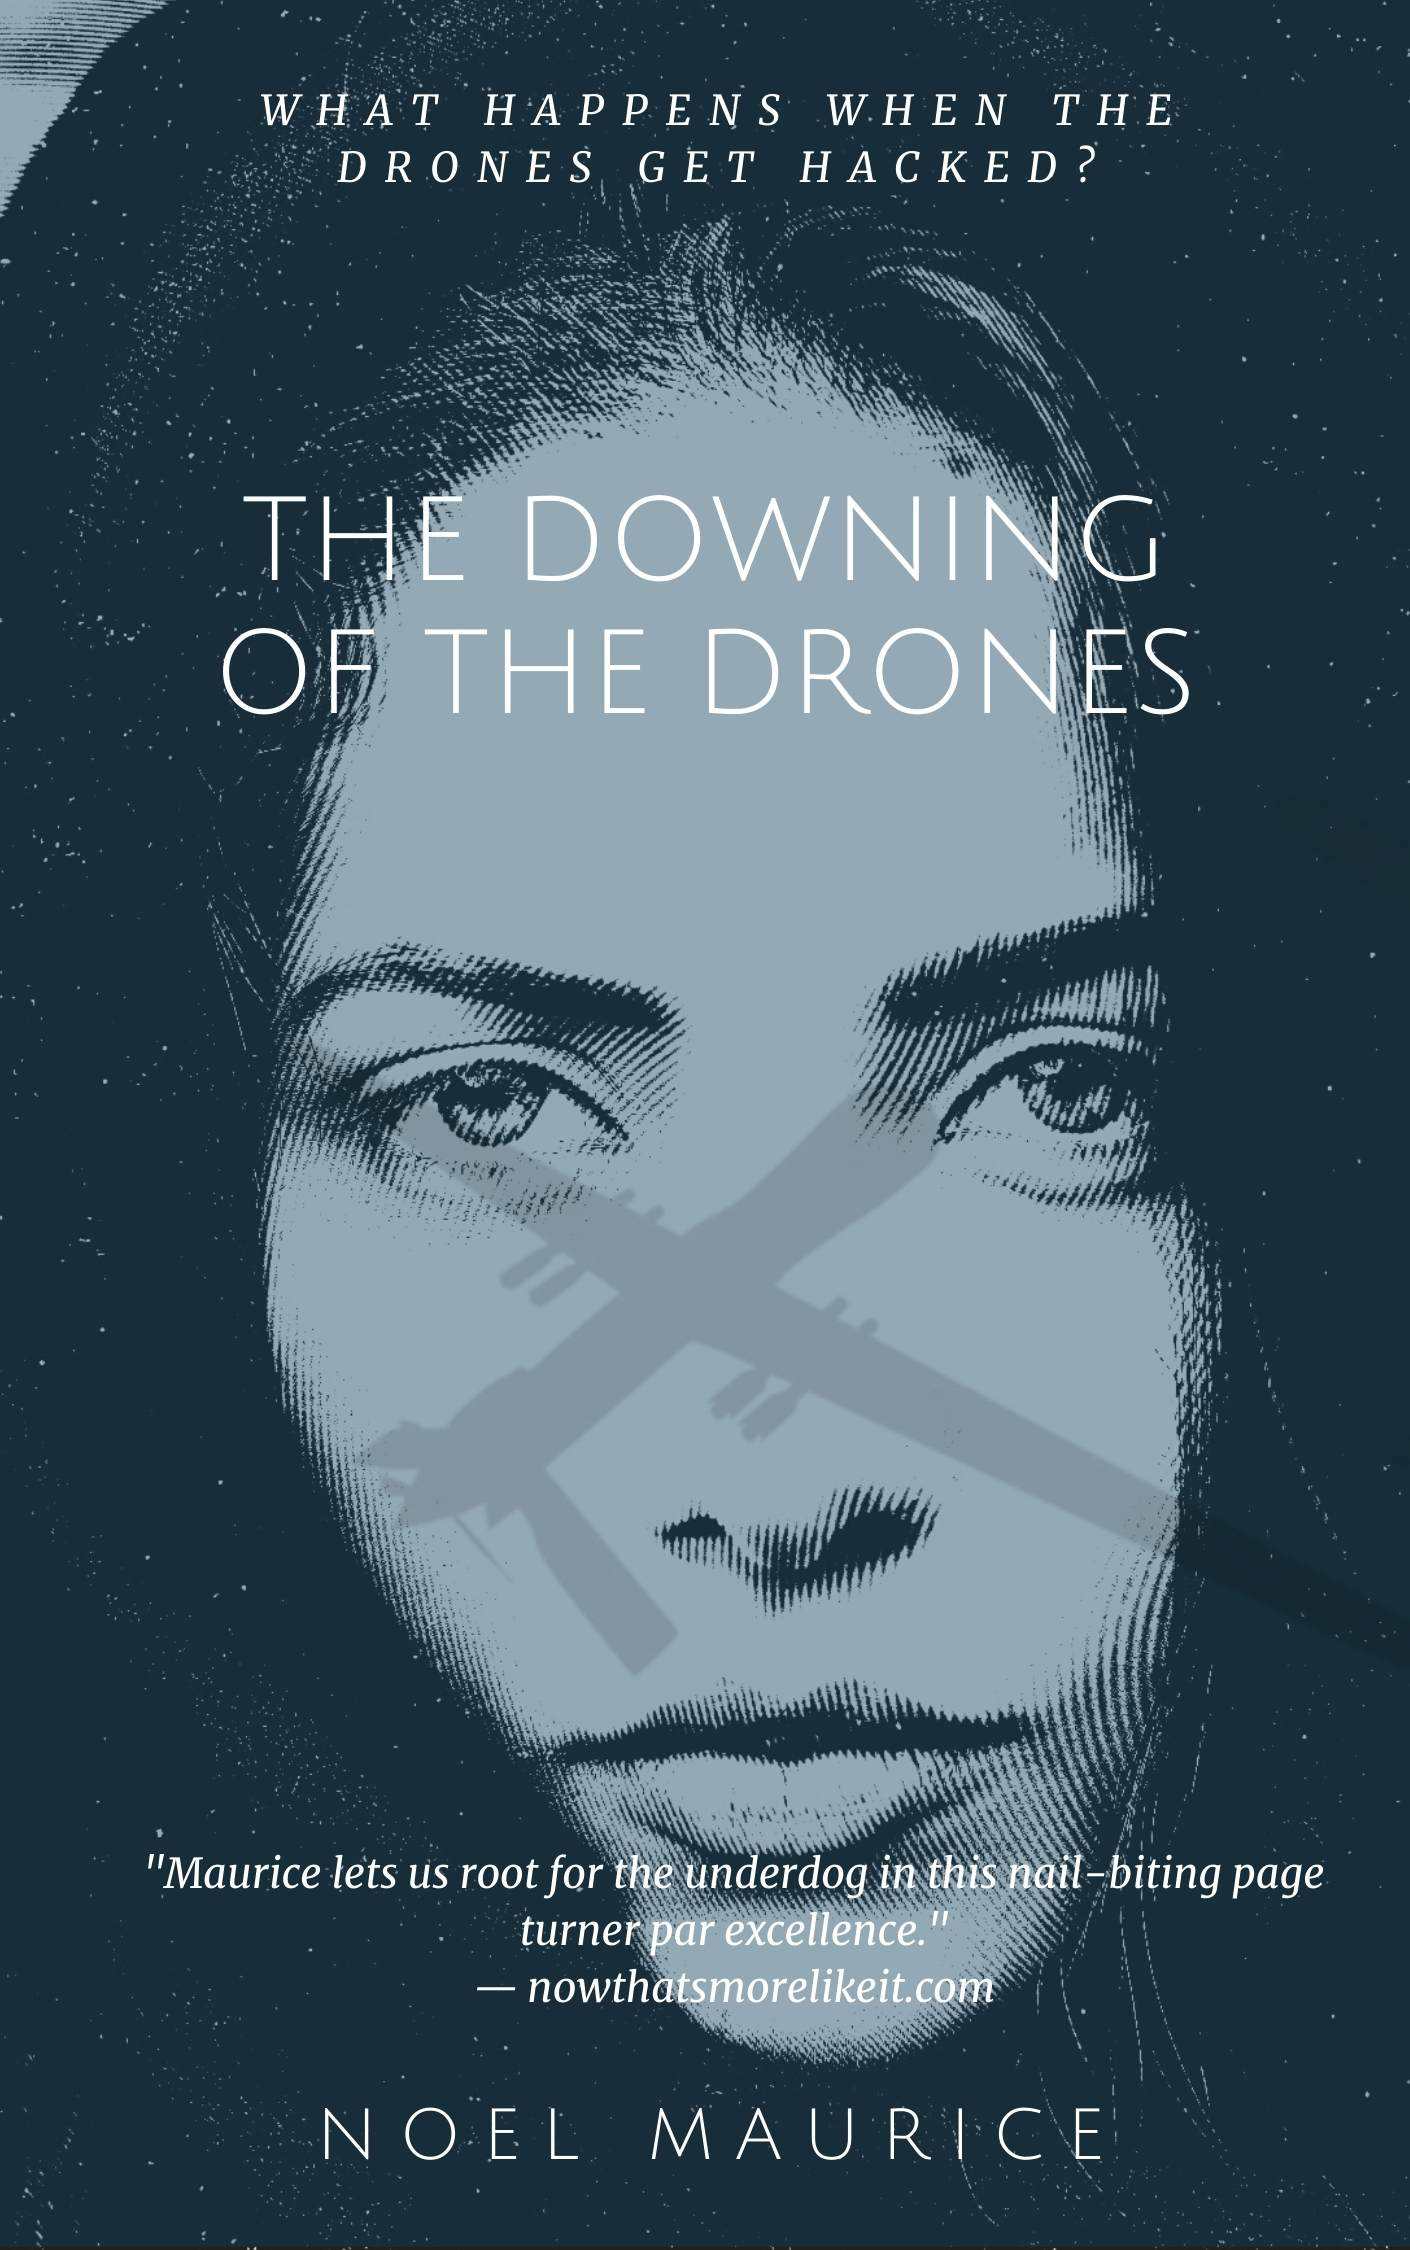 The Downing of the Drones by Noel Maurice out today